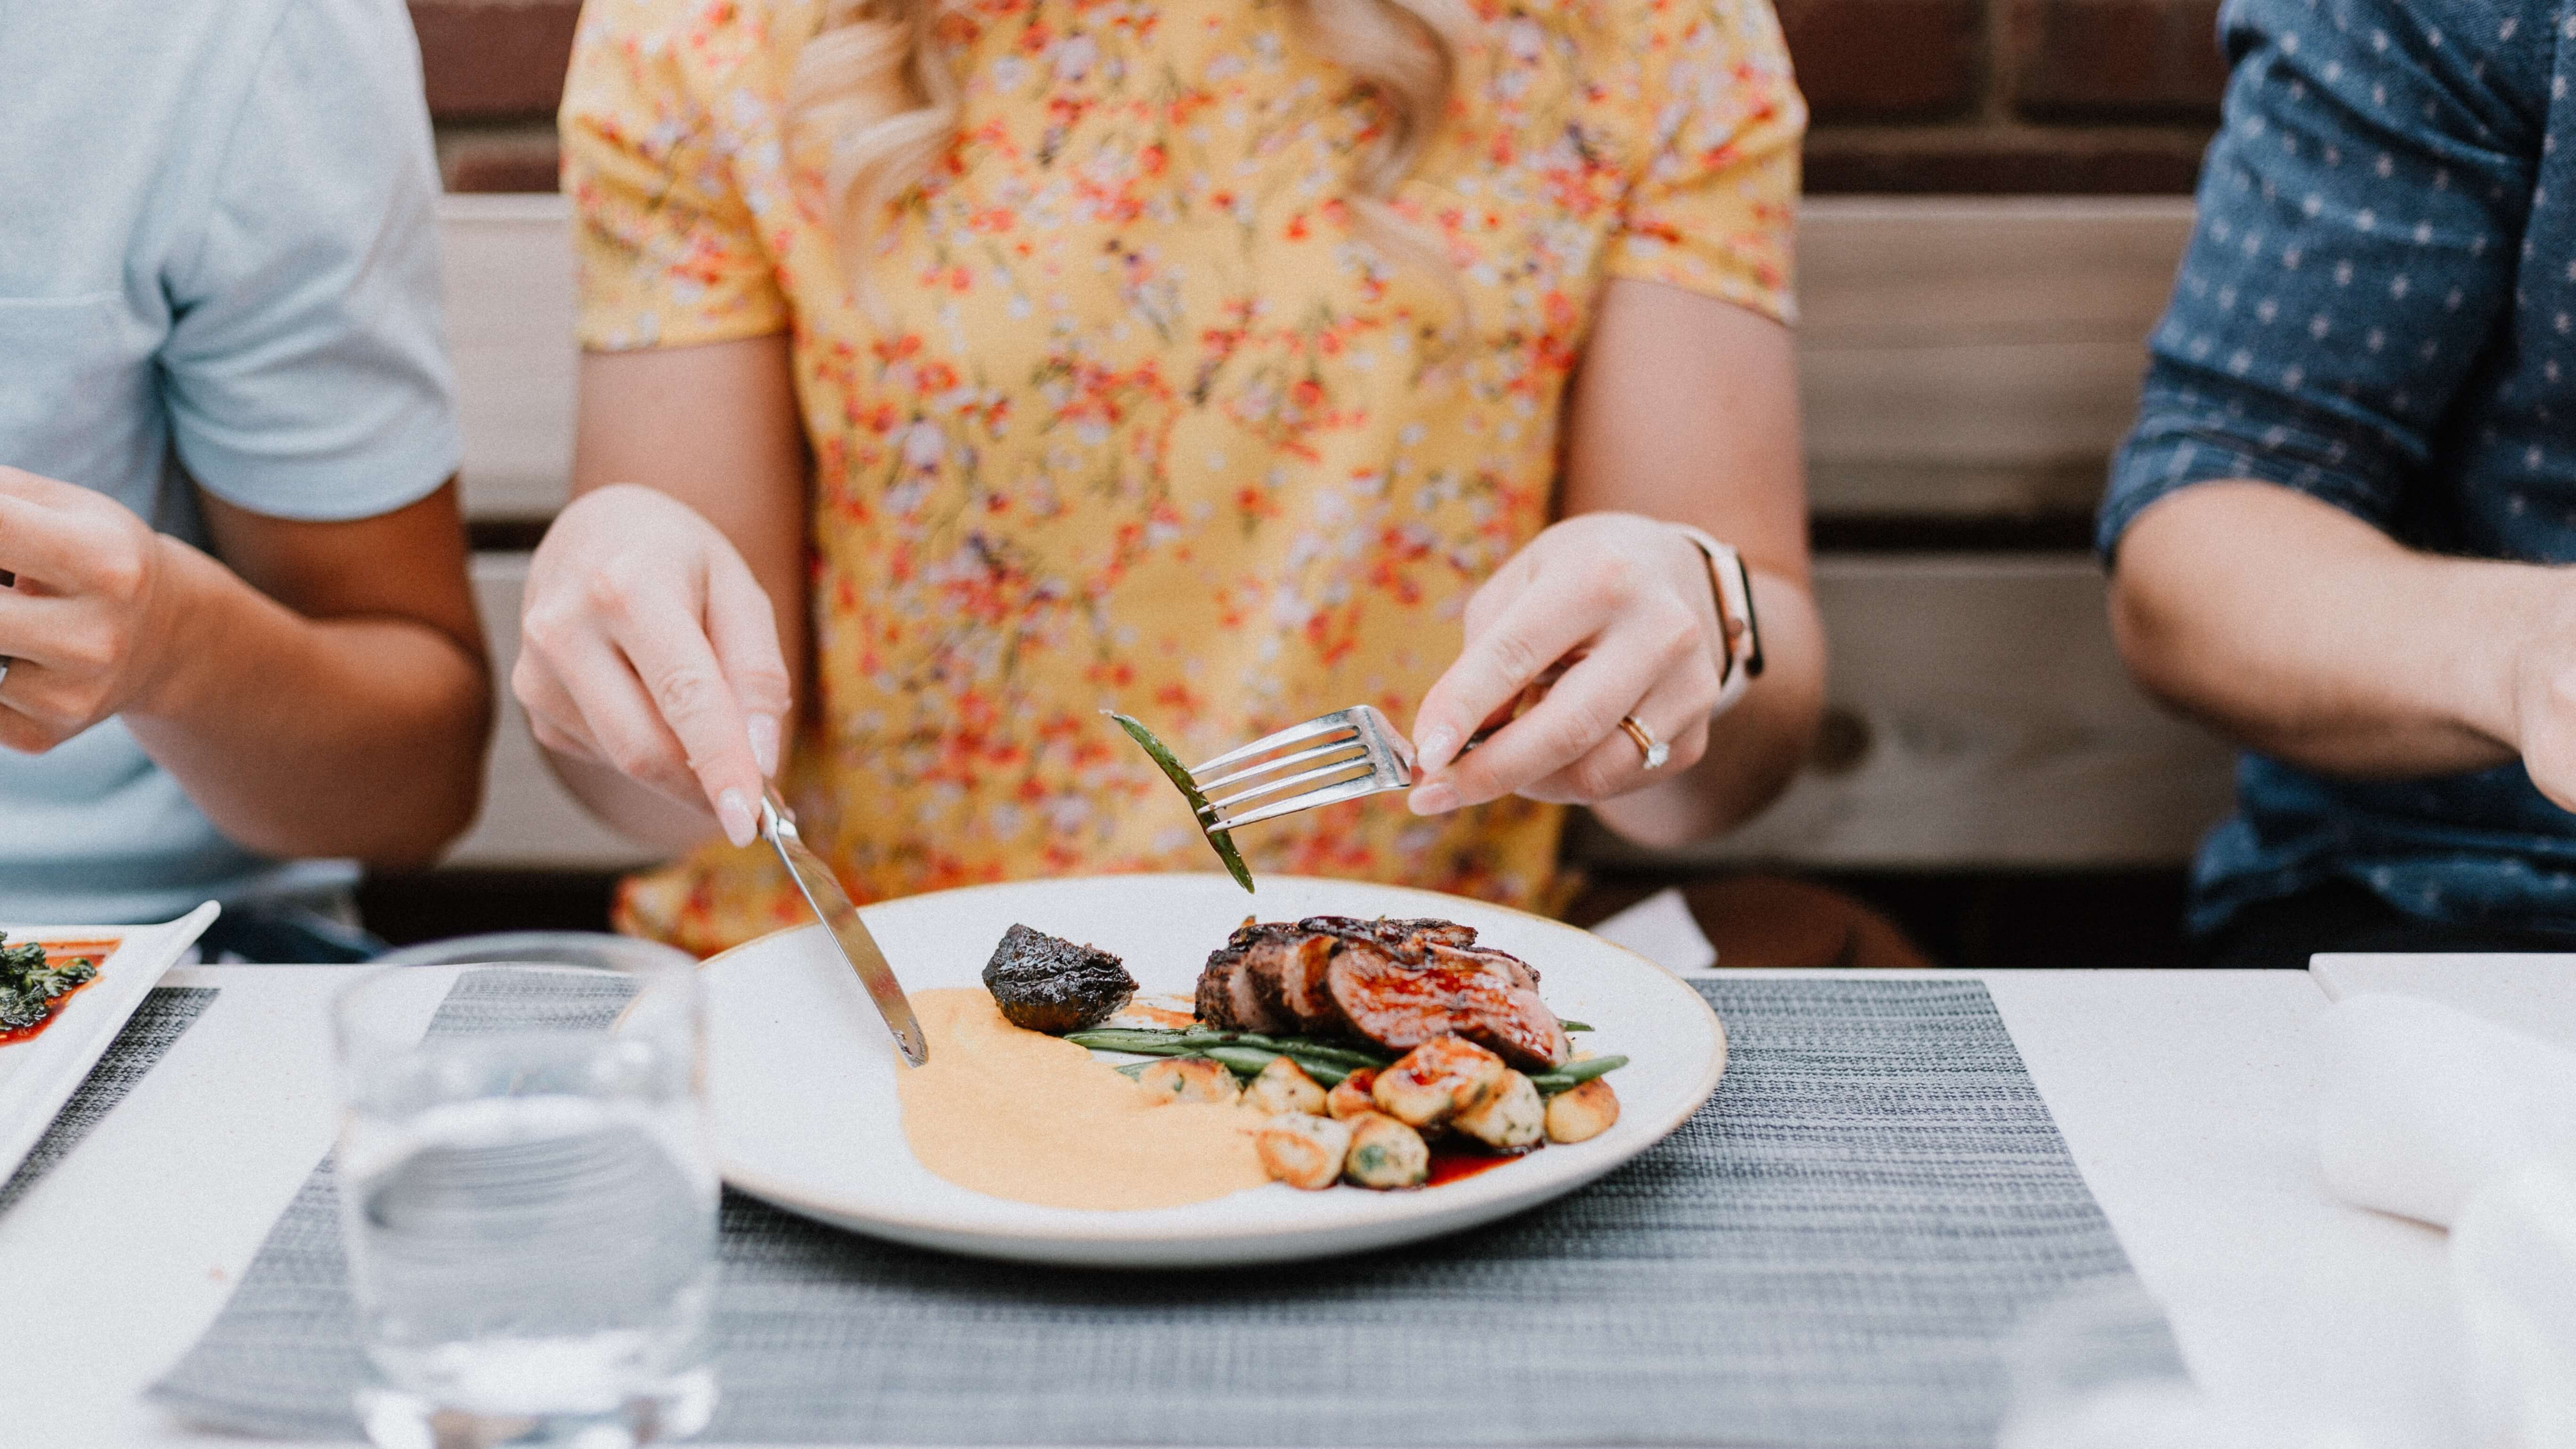 The Complicated Reasons People Eat Meat